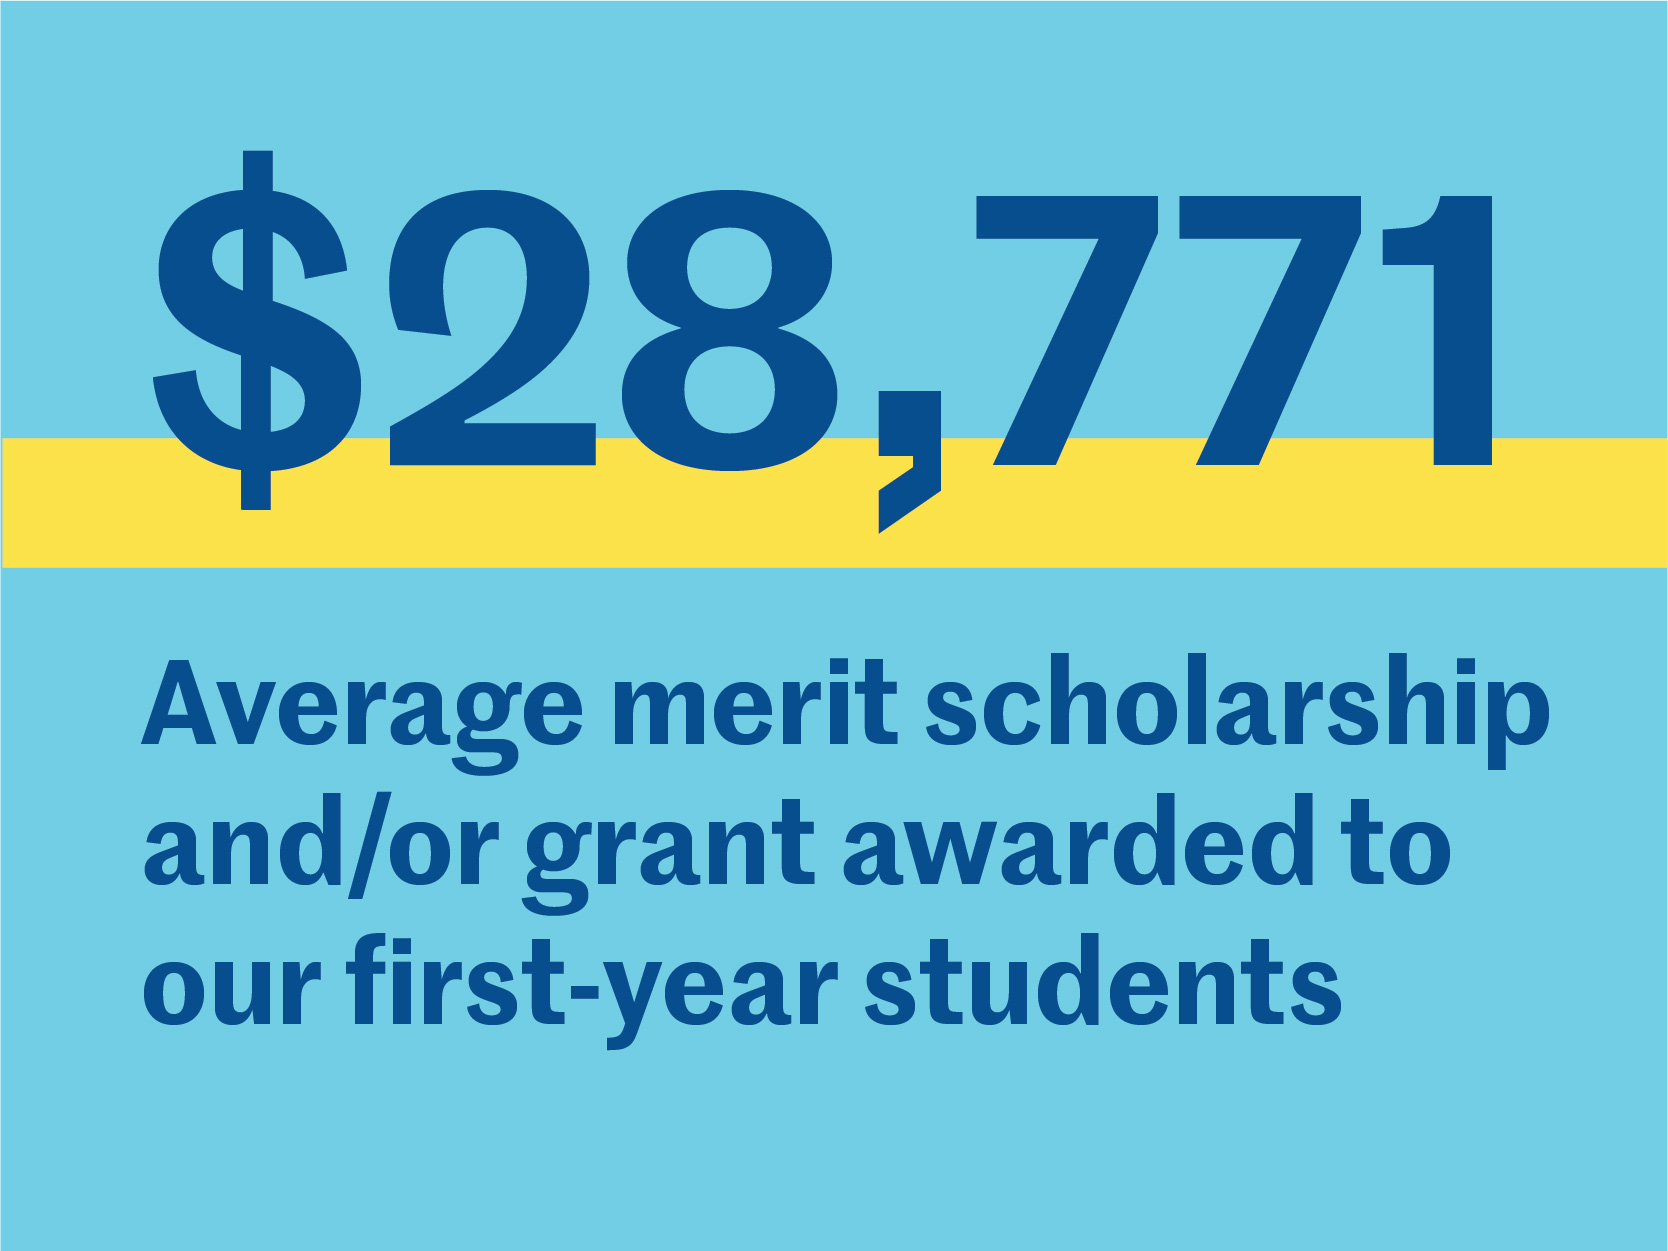 Average Merit Scholarship and/or grant awarded to First Year Students